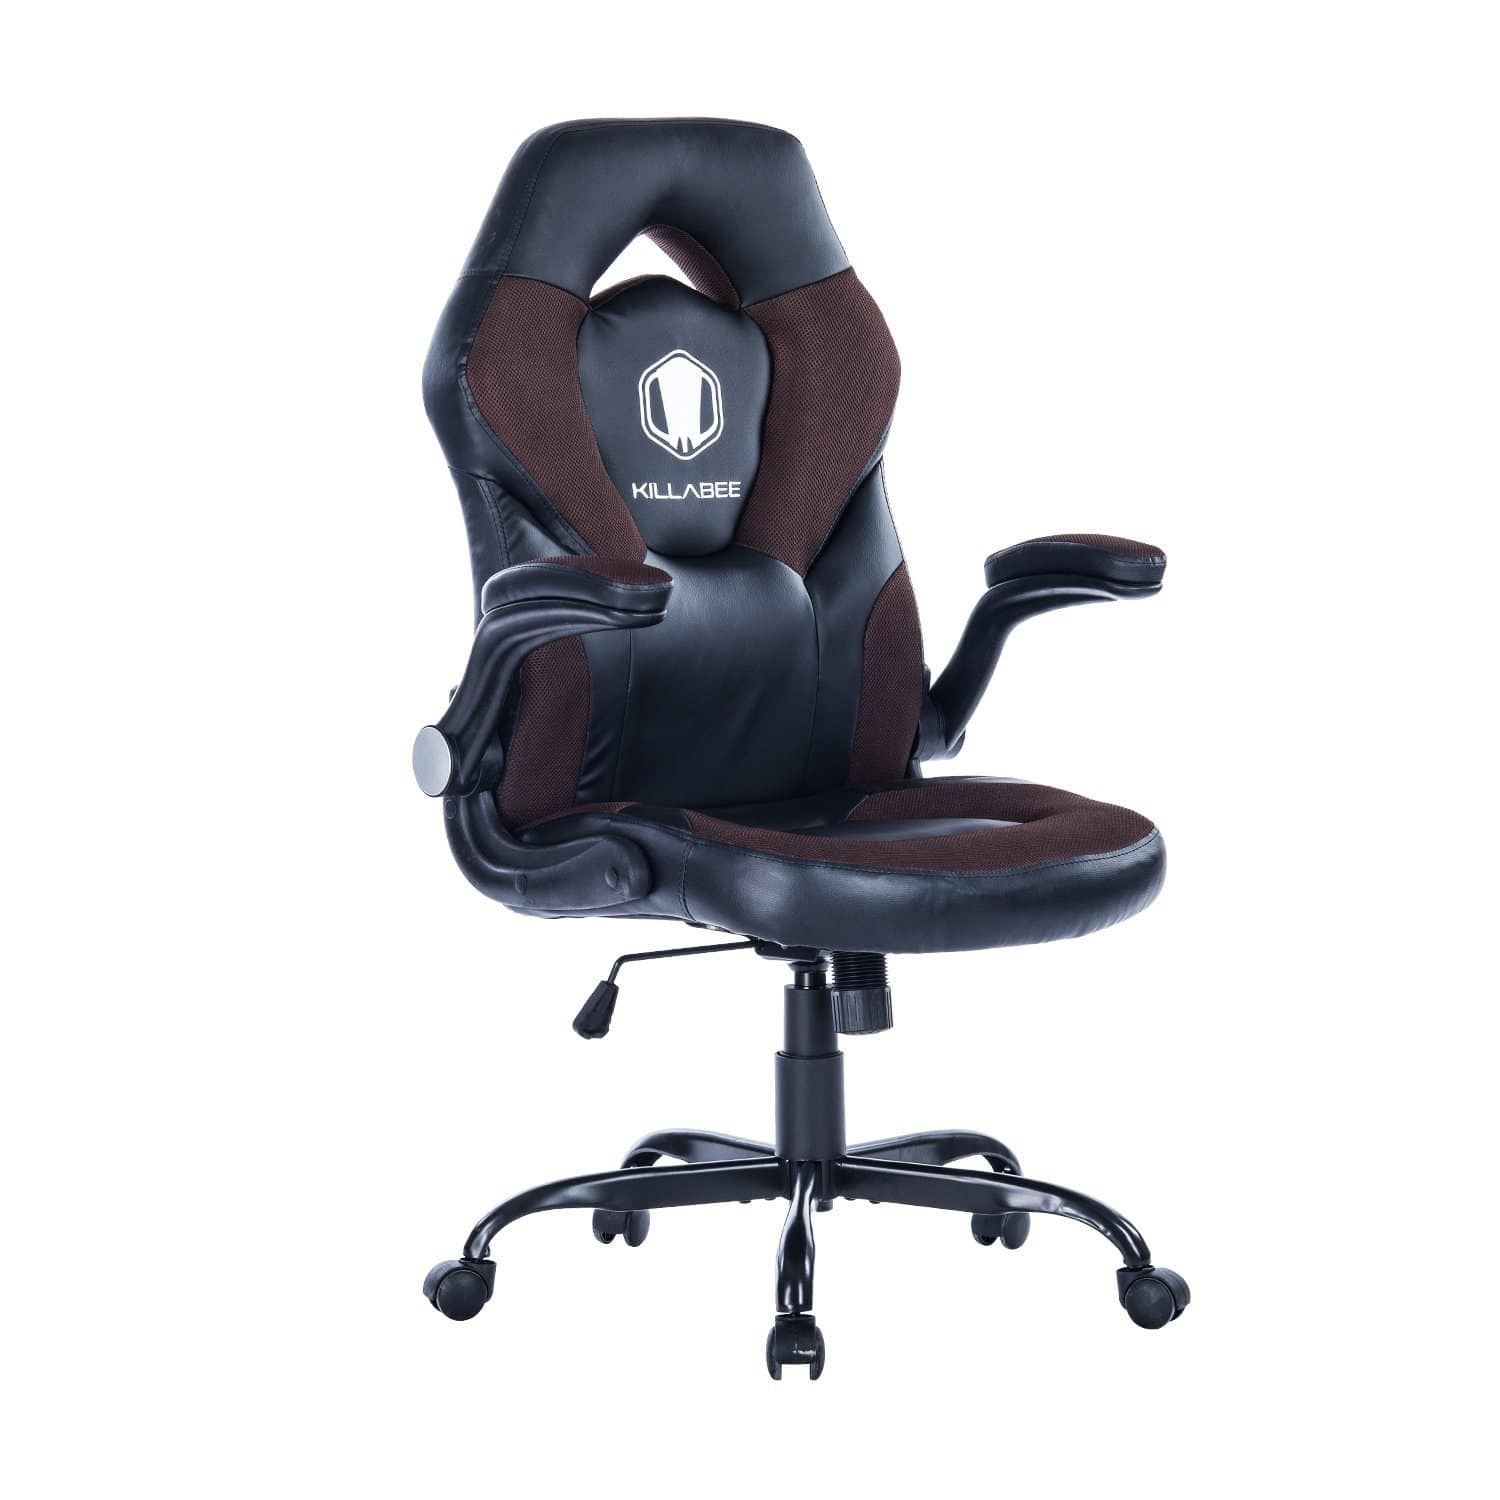 Groovy Top 10 Best Cheap Gaming Chairs Under 150 In 2019 Gaming Machost Co Dining Chair Design Ideas Machostcouk